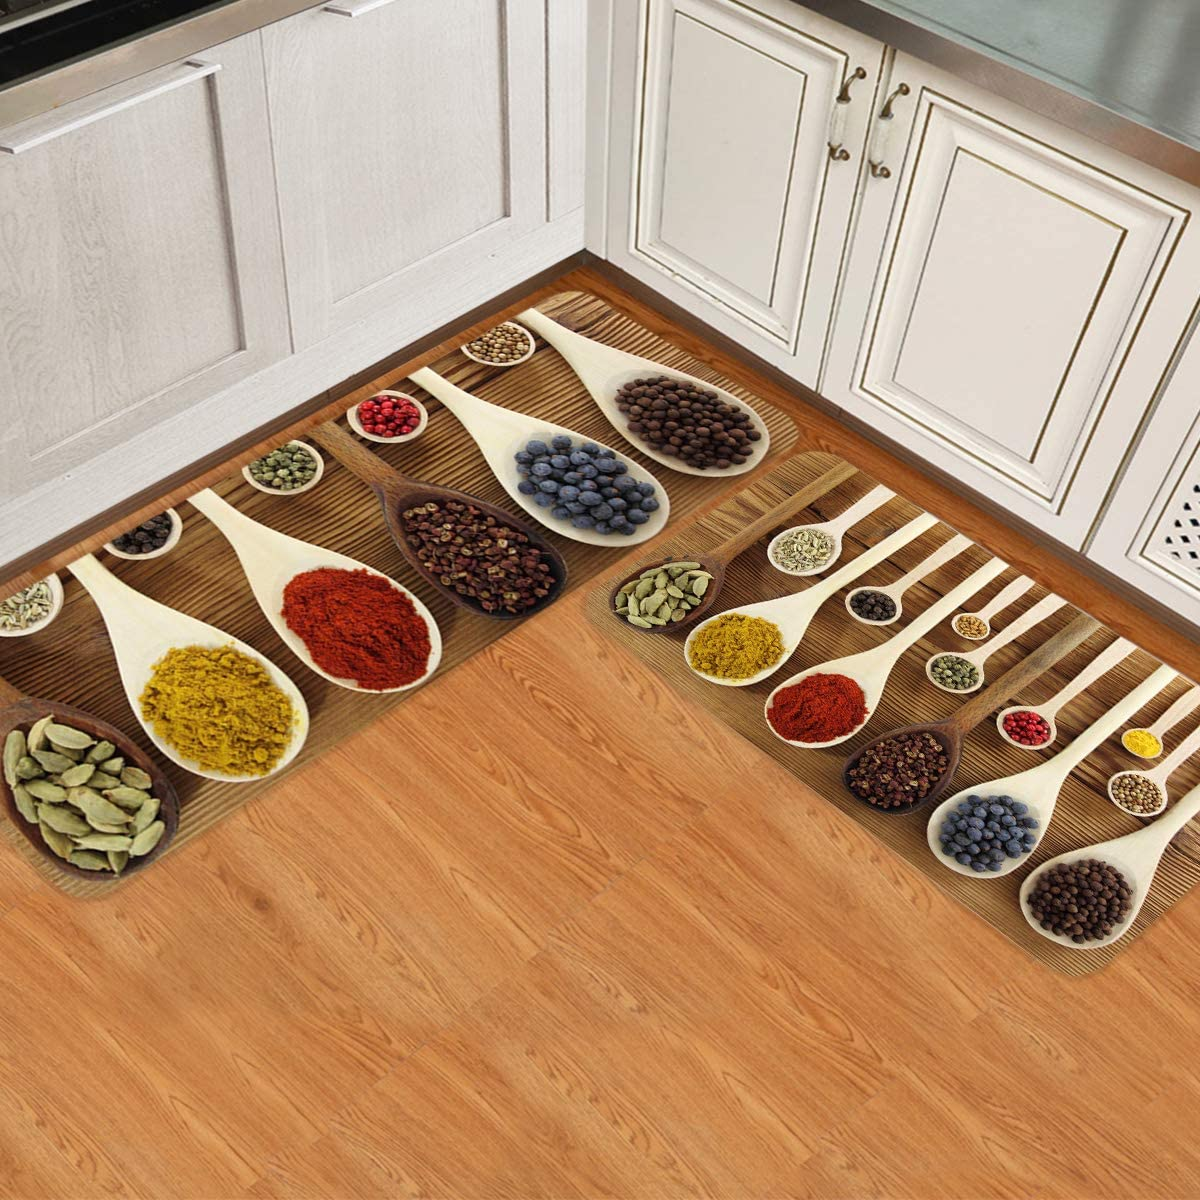 Gsypo Spices Kitchen Rugs Set 2 Colorful National products Shipping included Pieces in Woode